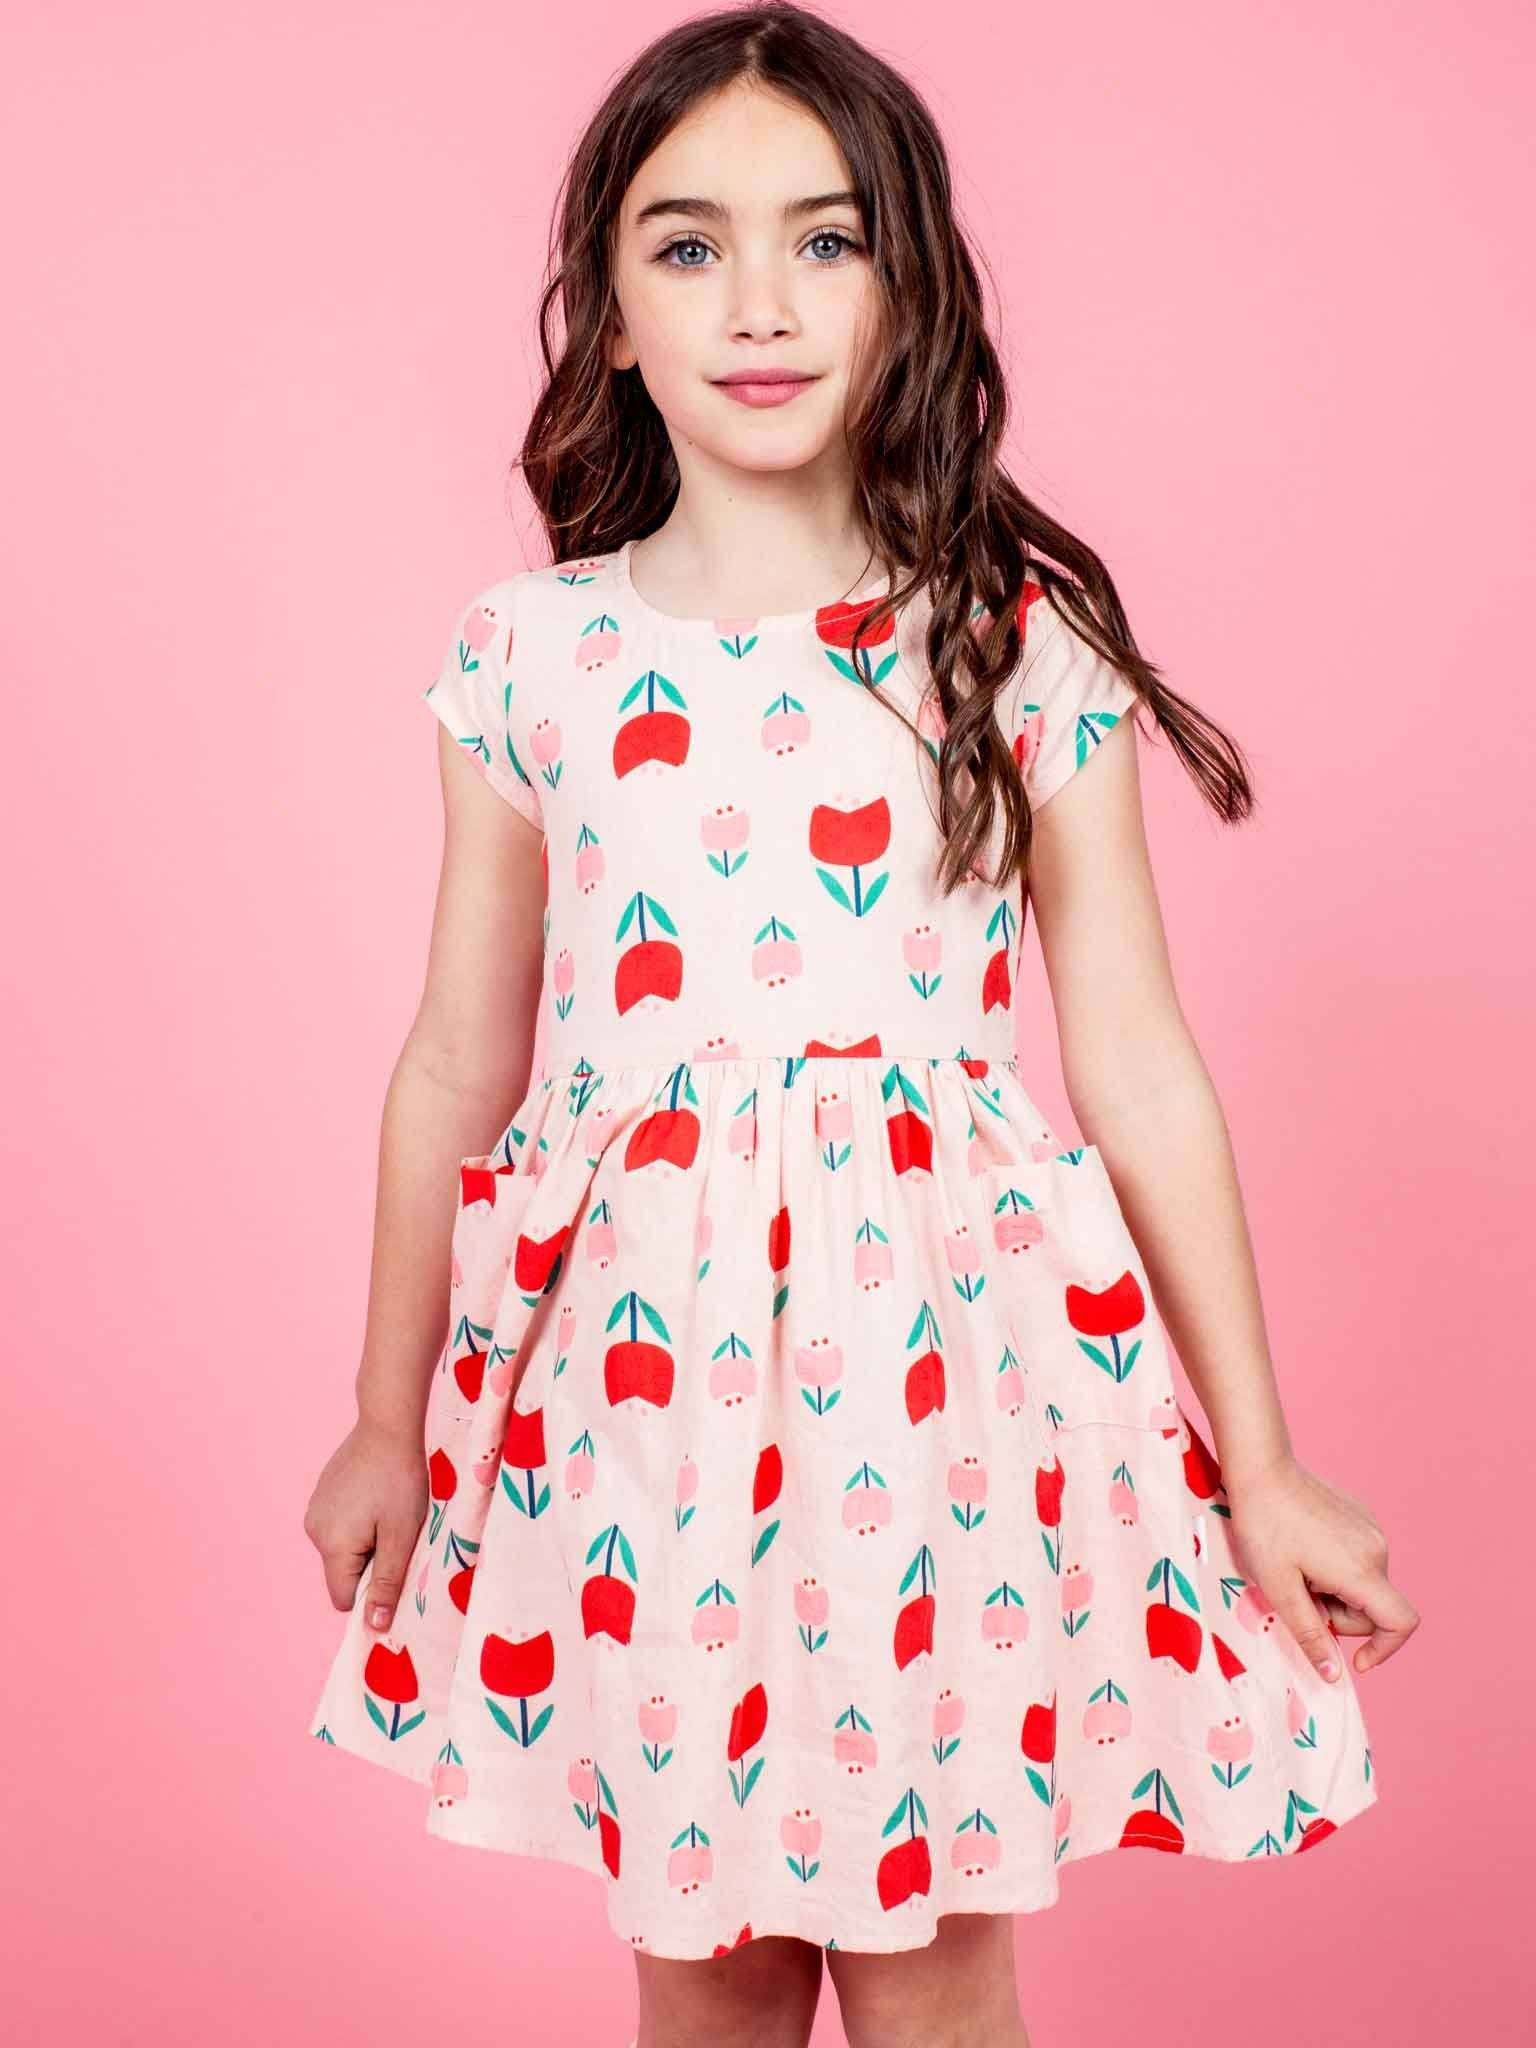 Megan Short Sleeved Dress Pink Tulip